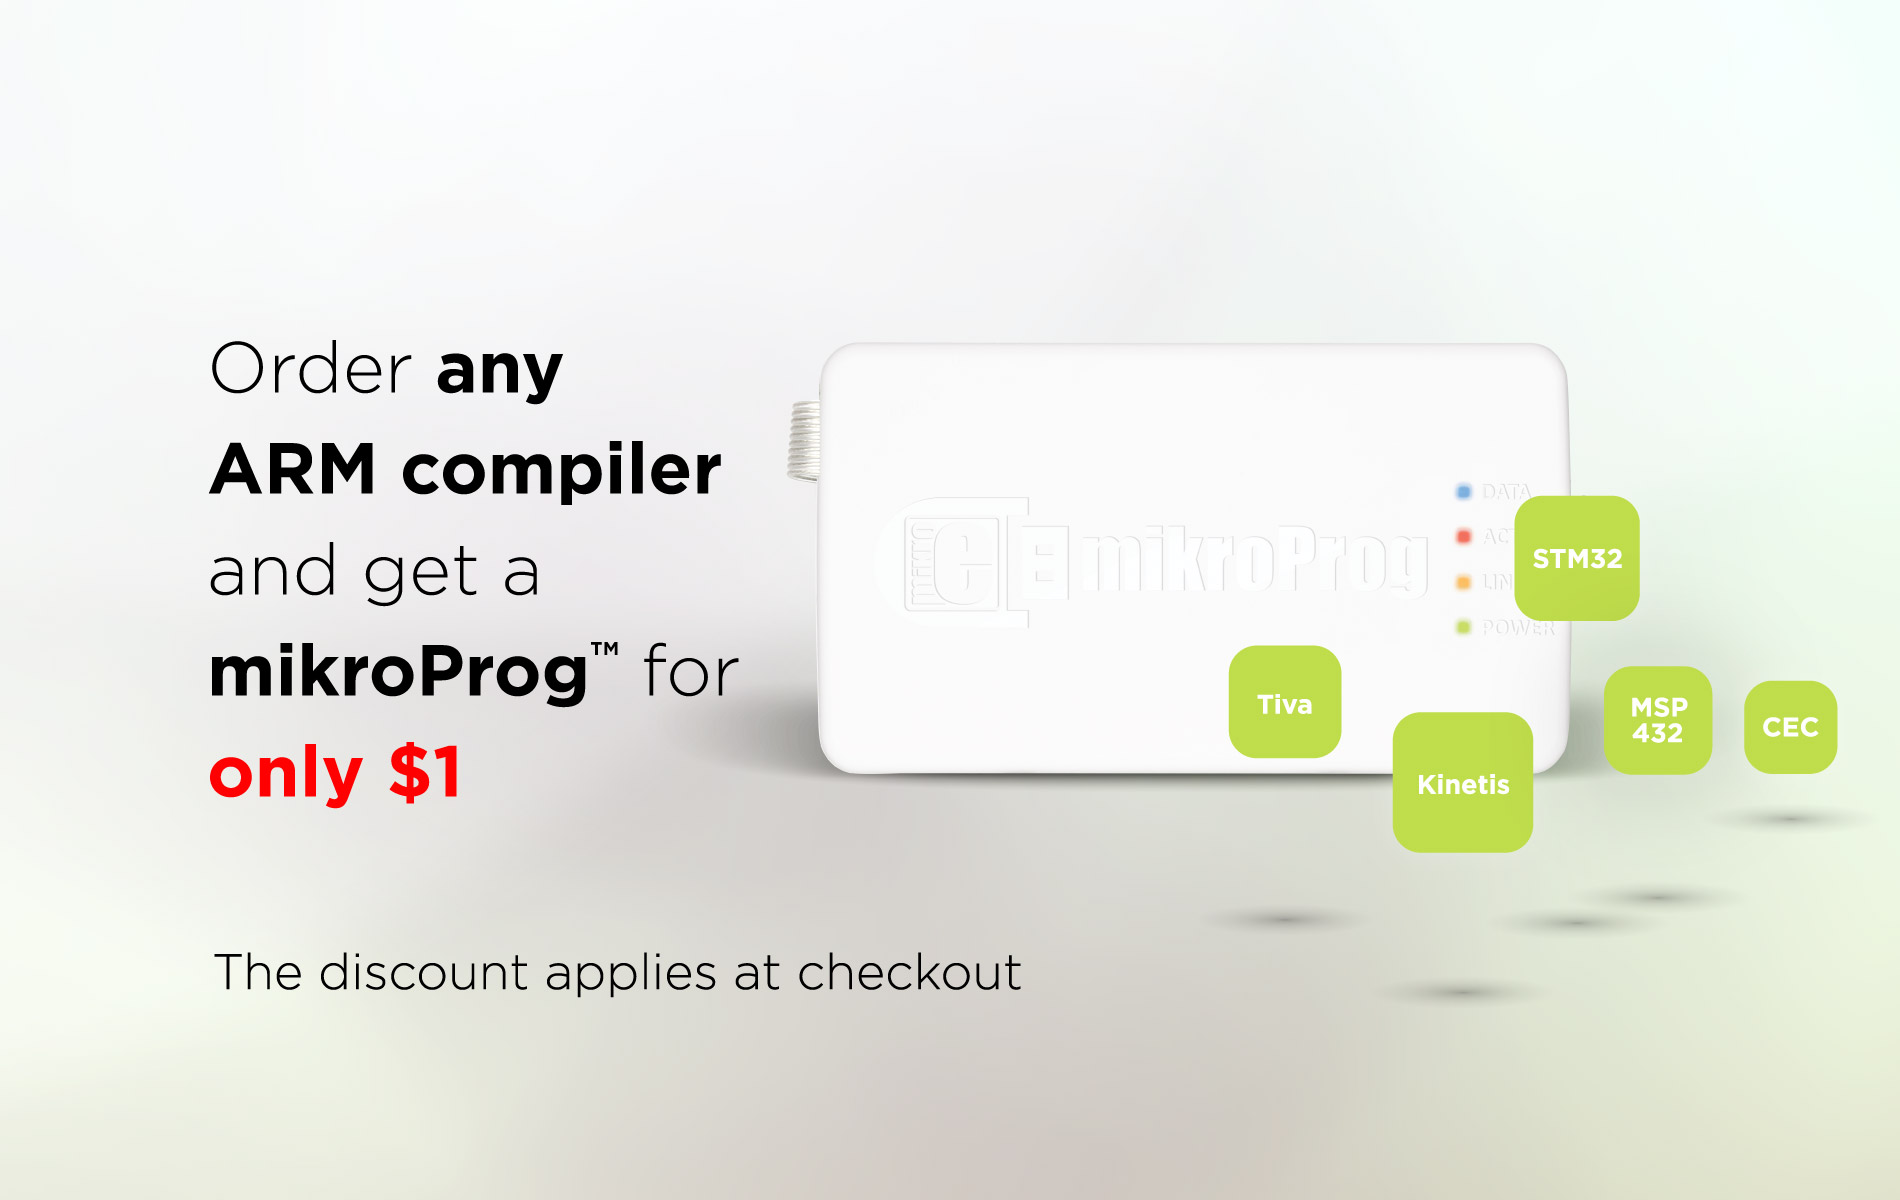 Get a mikroProg™ for only $1 - special offer with the ARM compilers